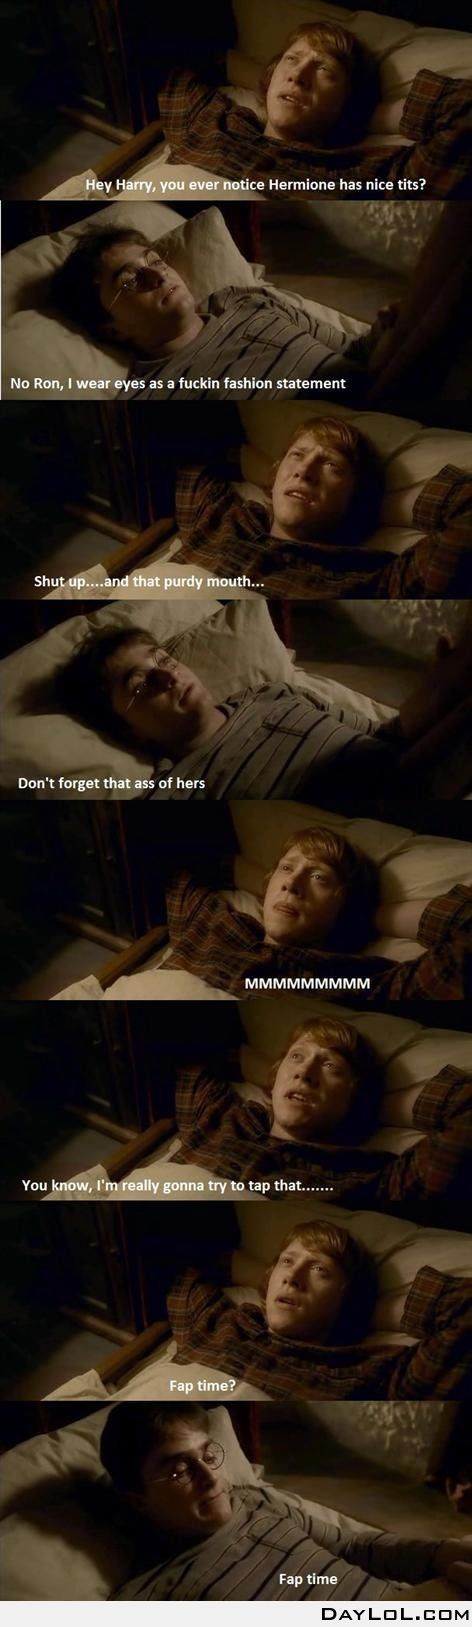 Fap time with Ron and Harry